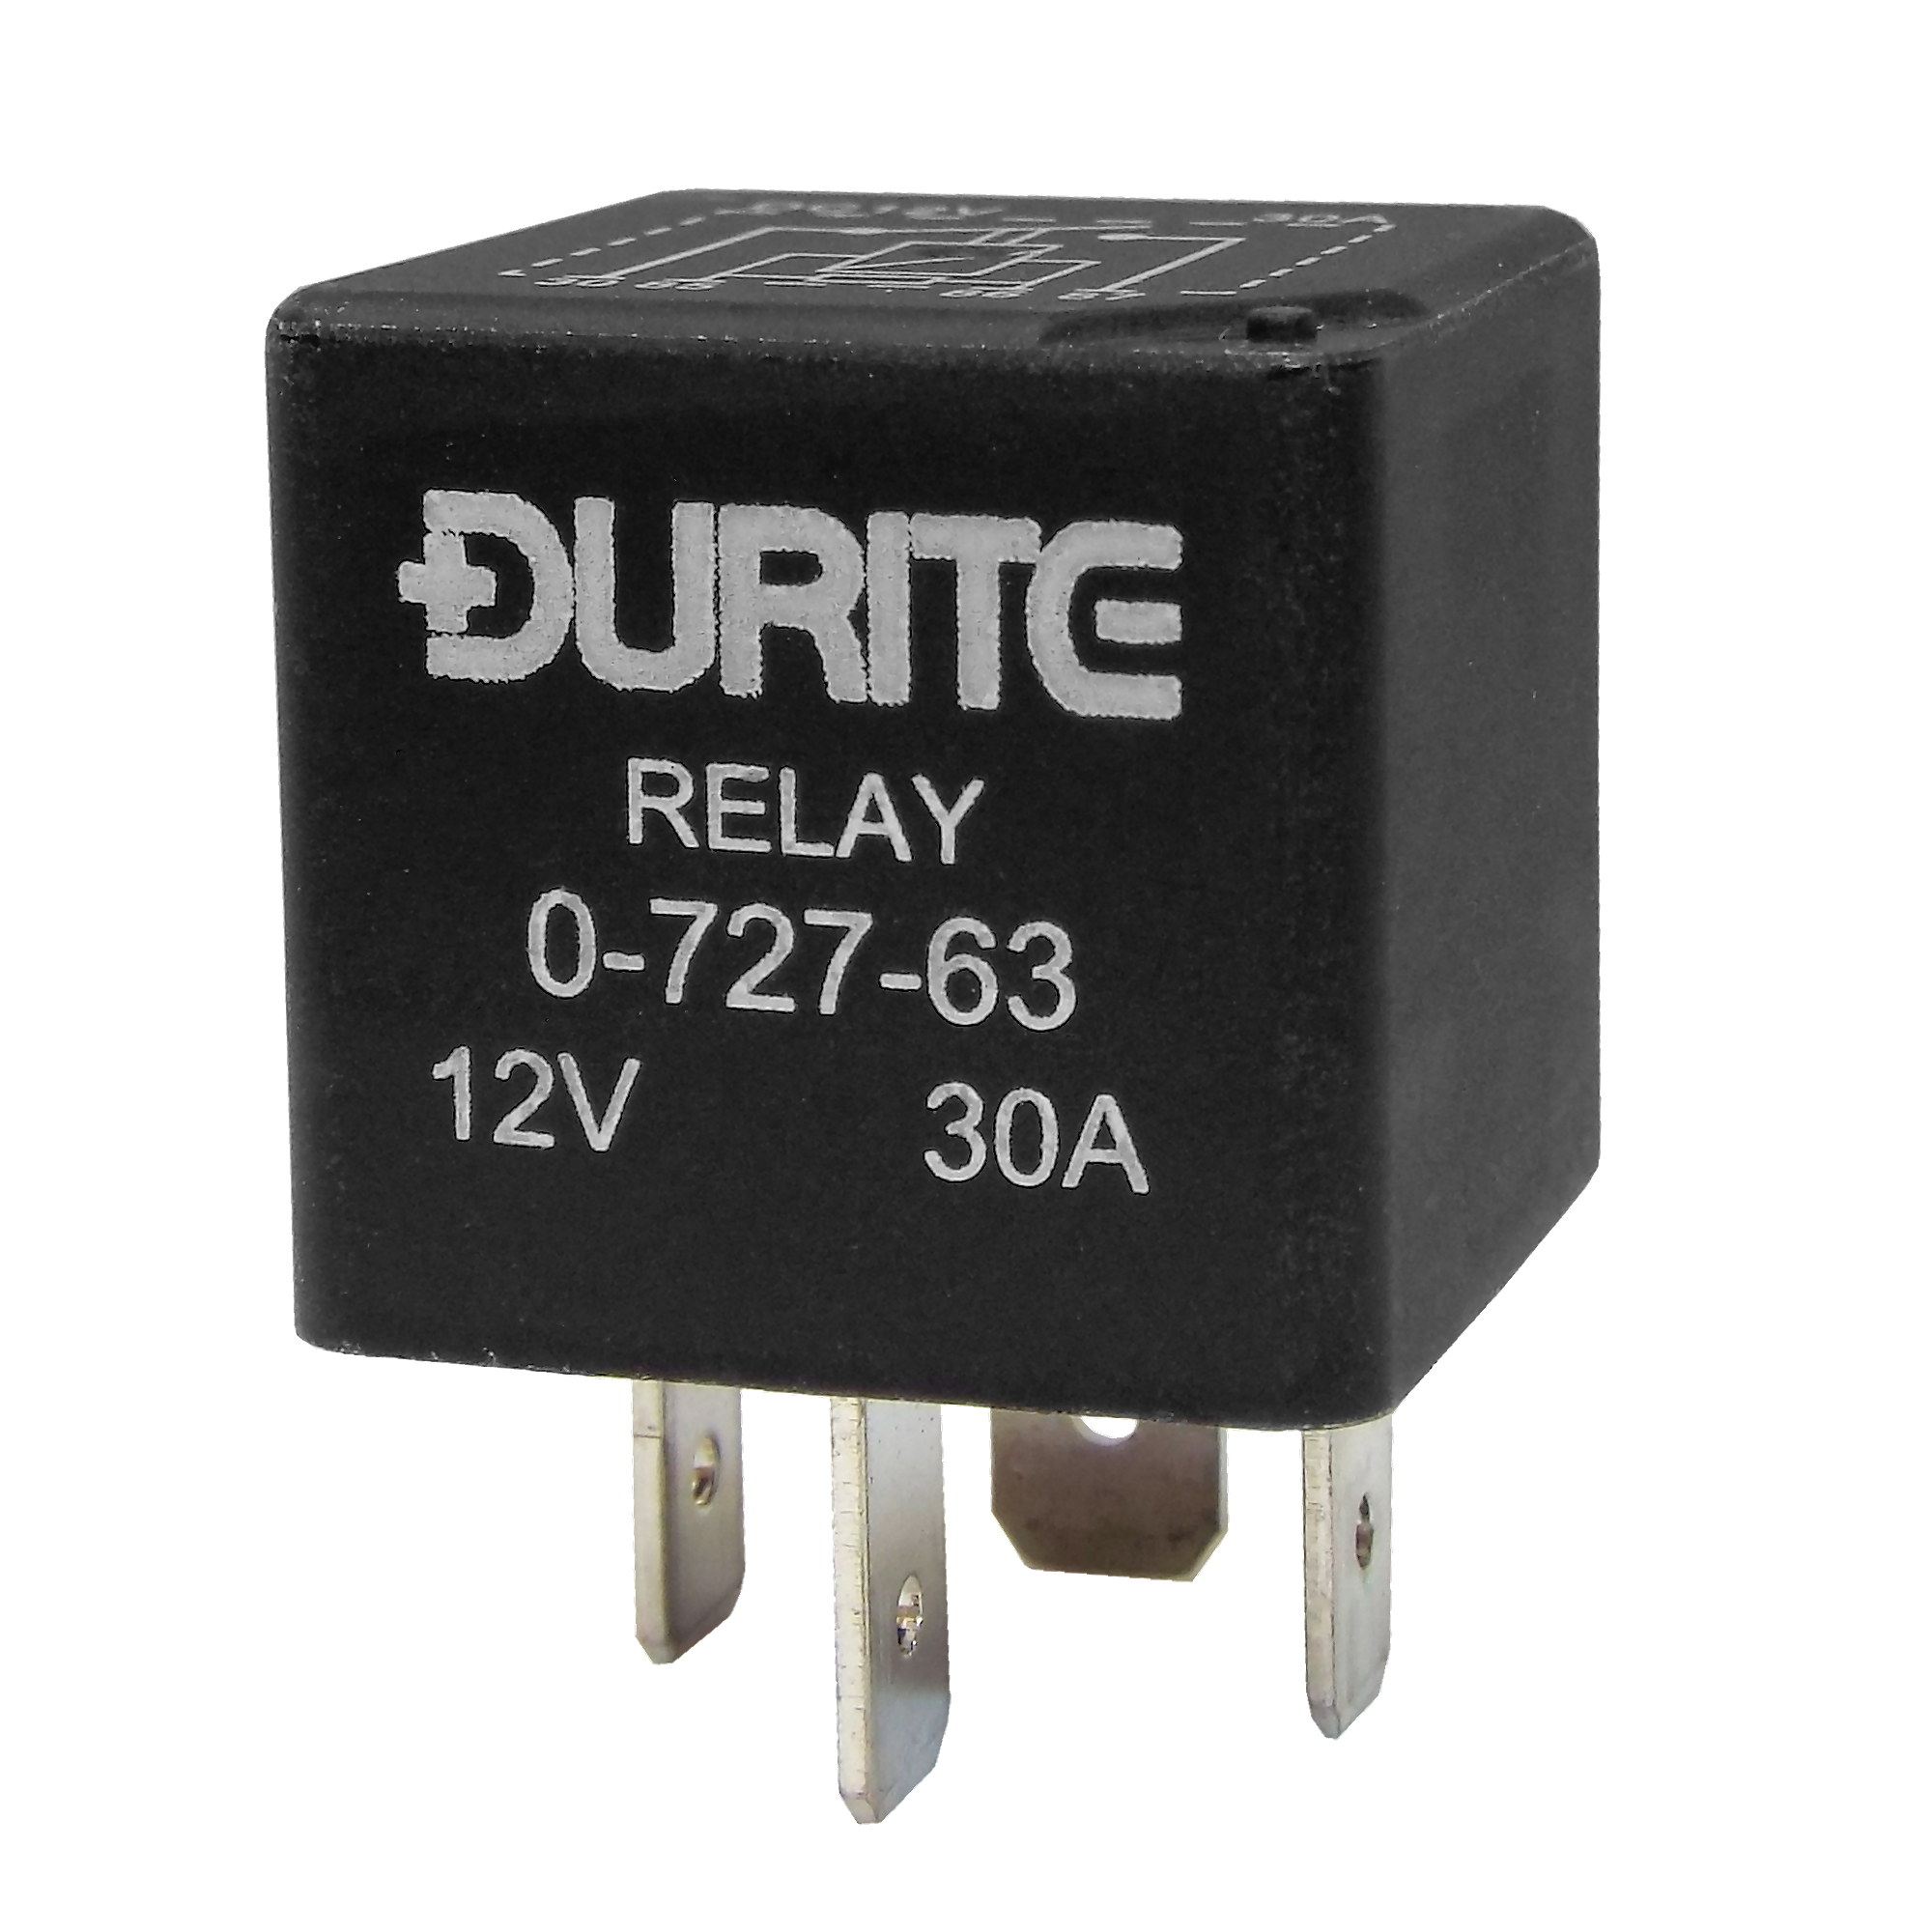 hight resolution of durite relay wiring diagram wiring library durite split charge relay wiring diagram 0 727 63 durite